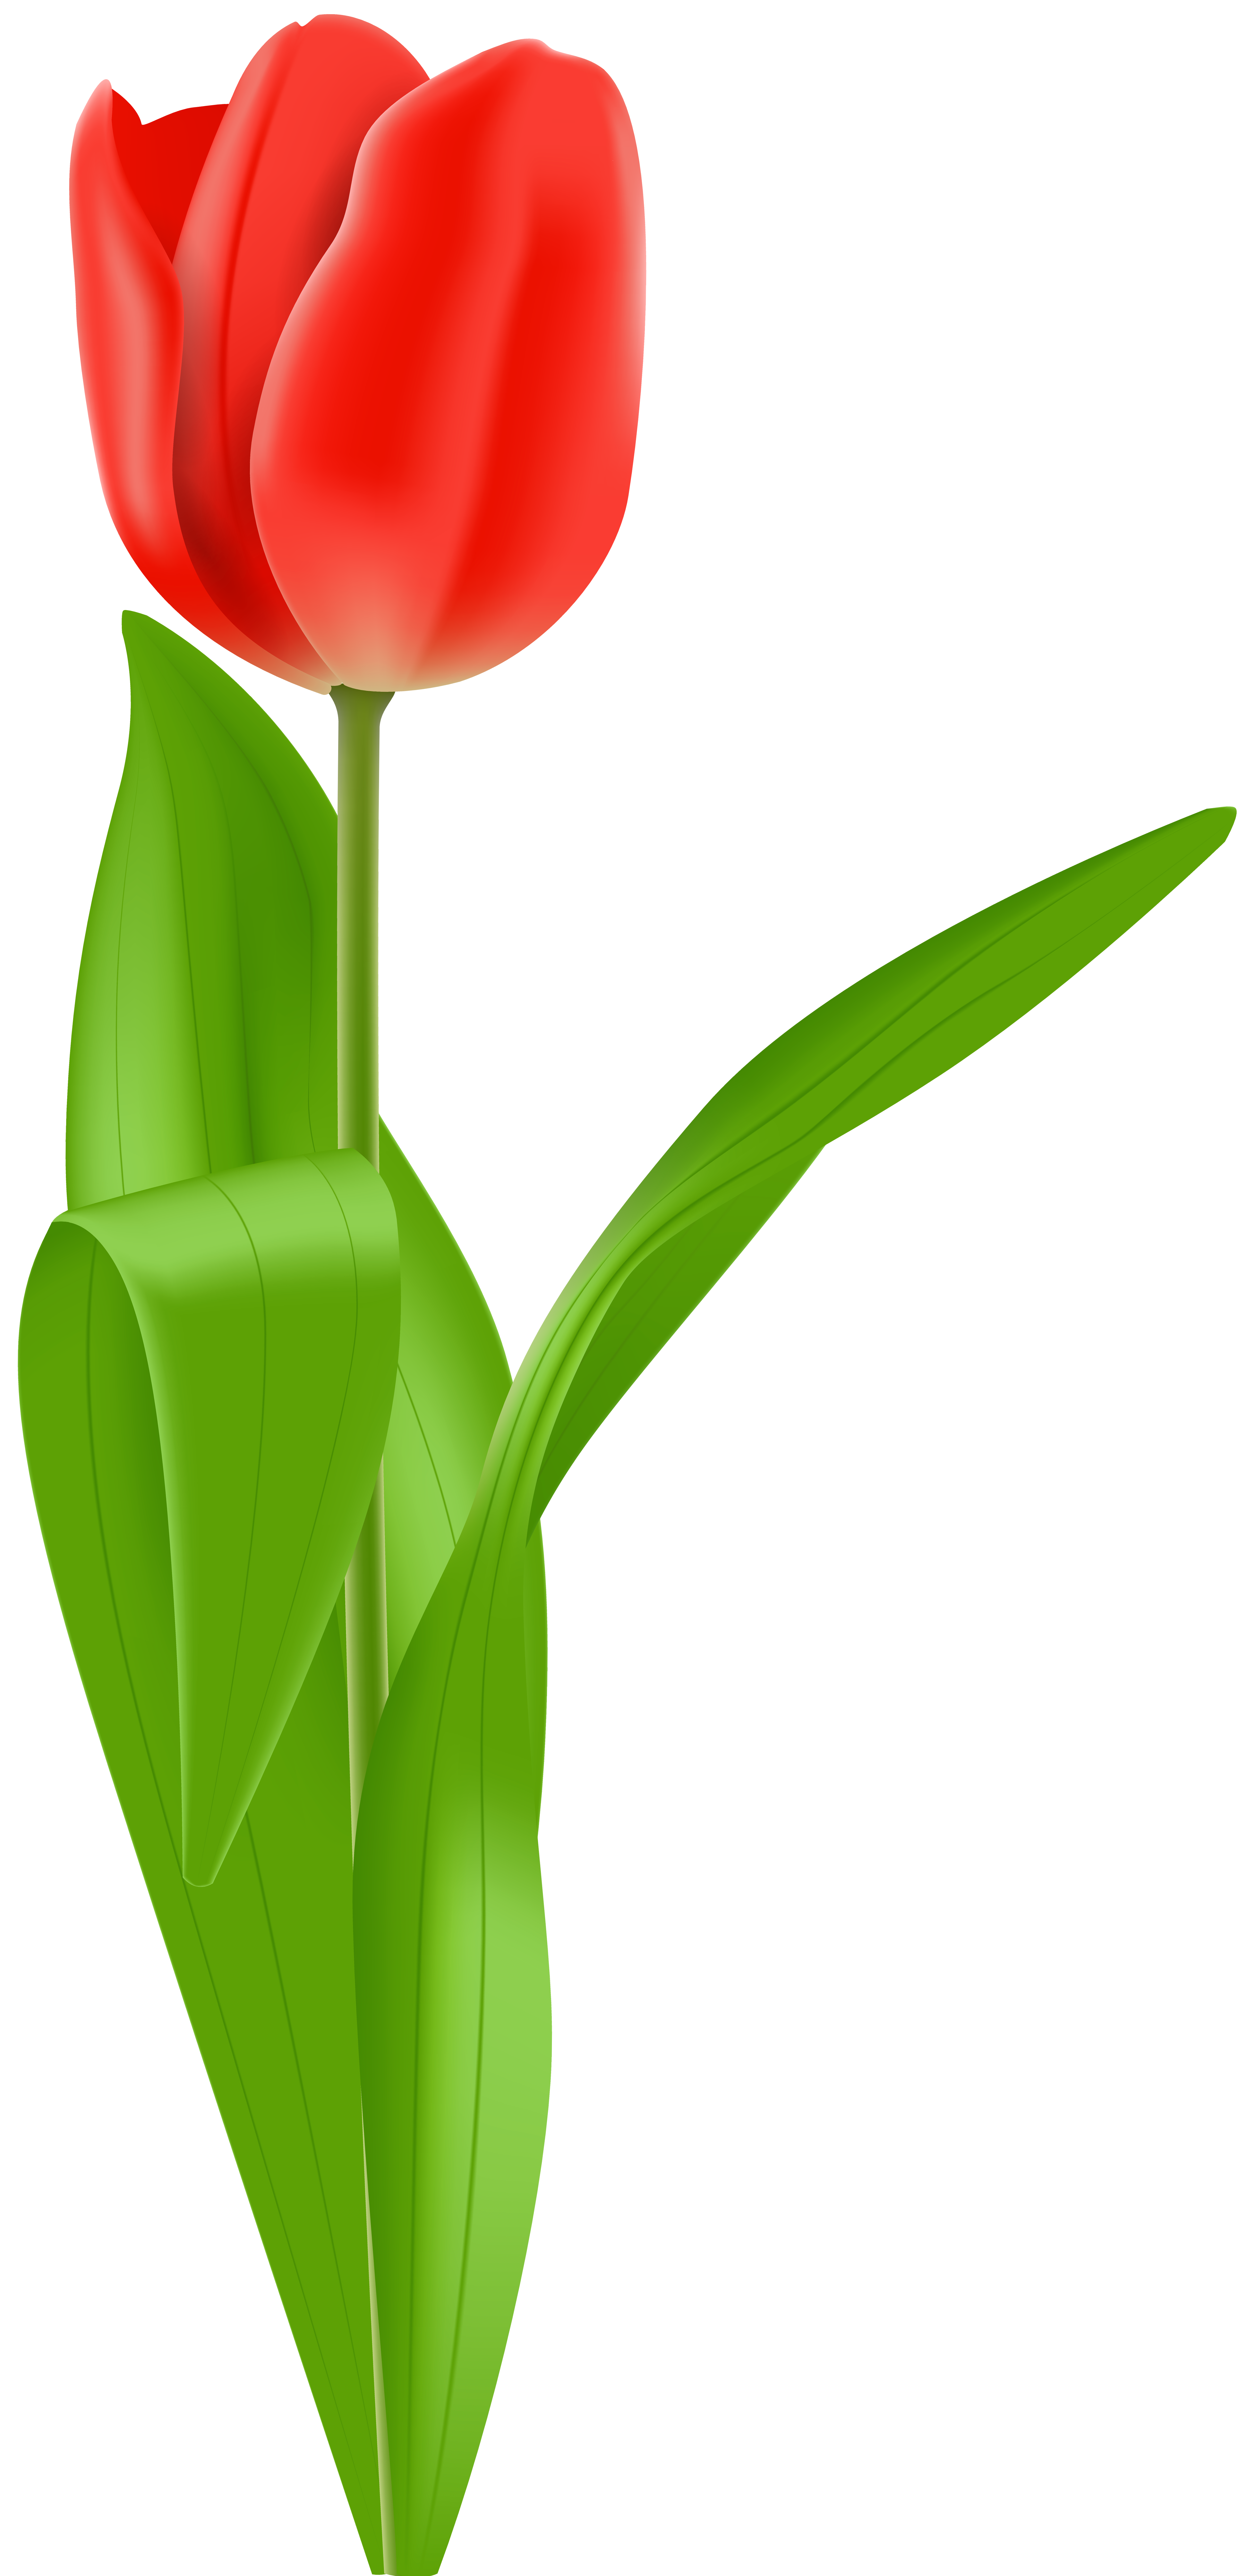 Red Tulip PNG Clip Art Image.